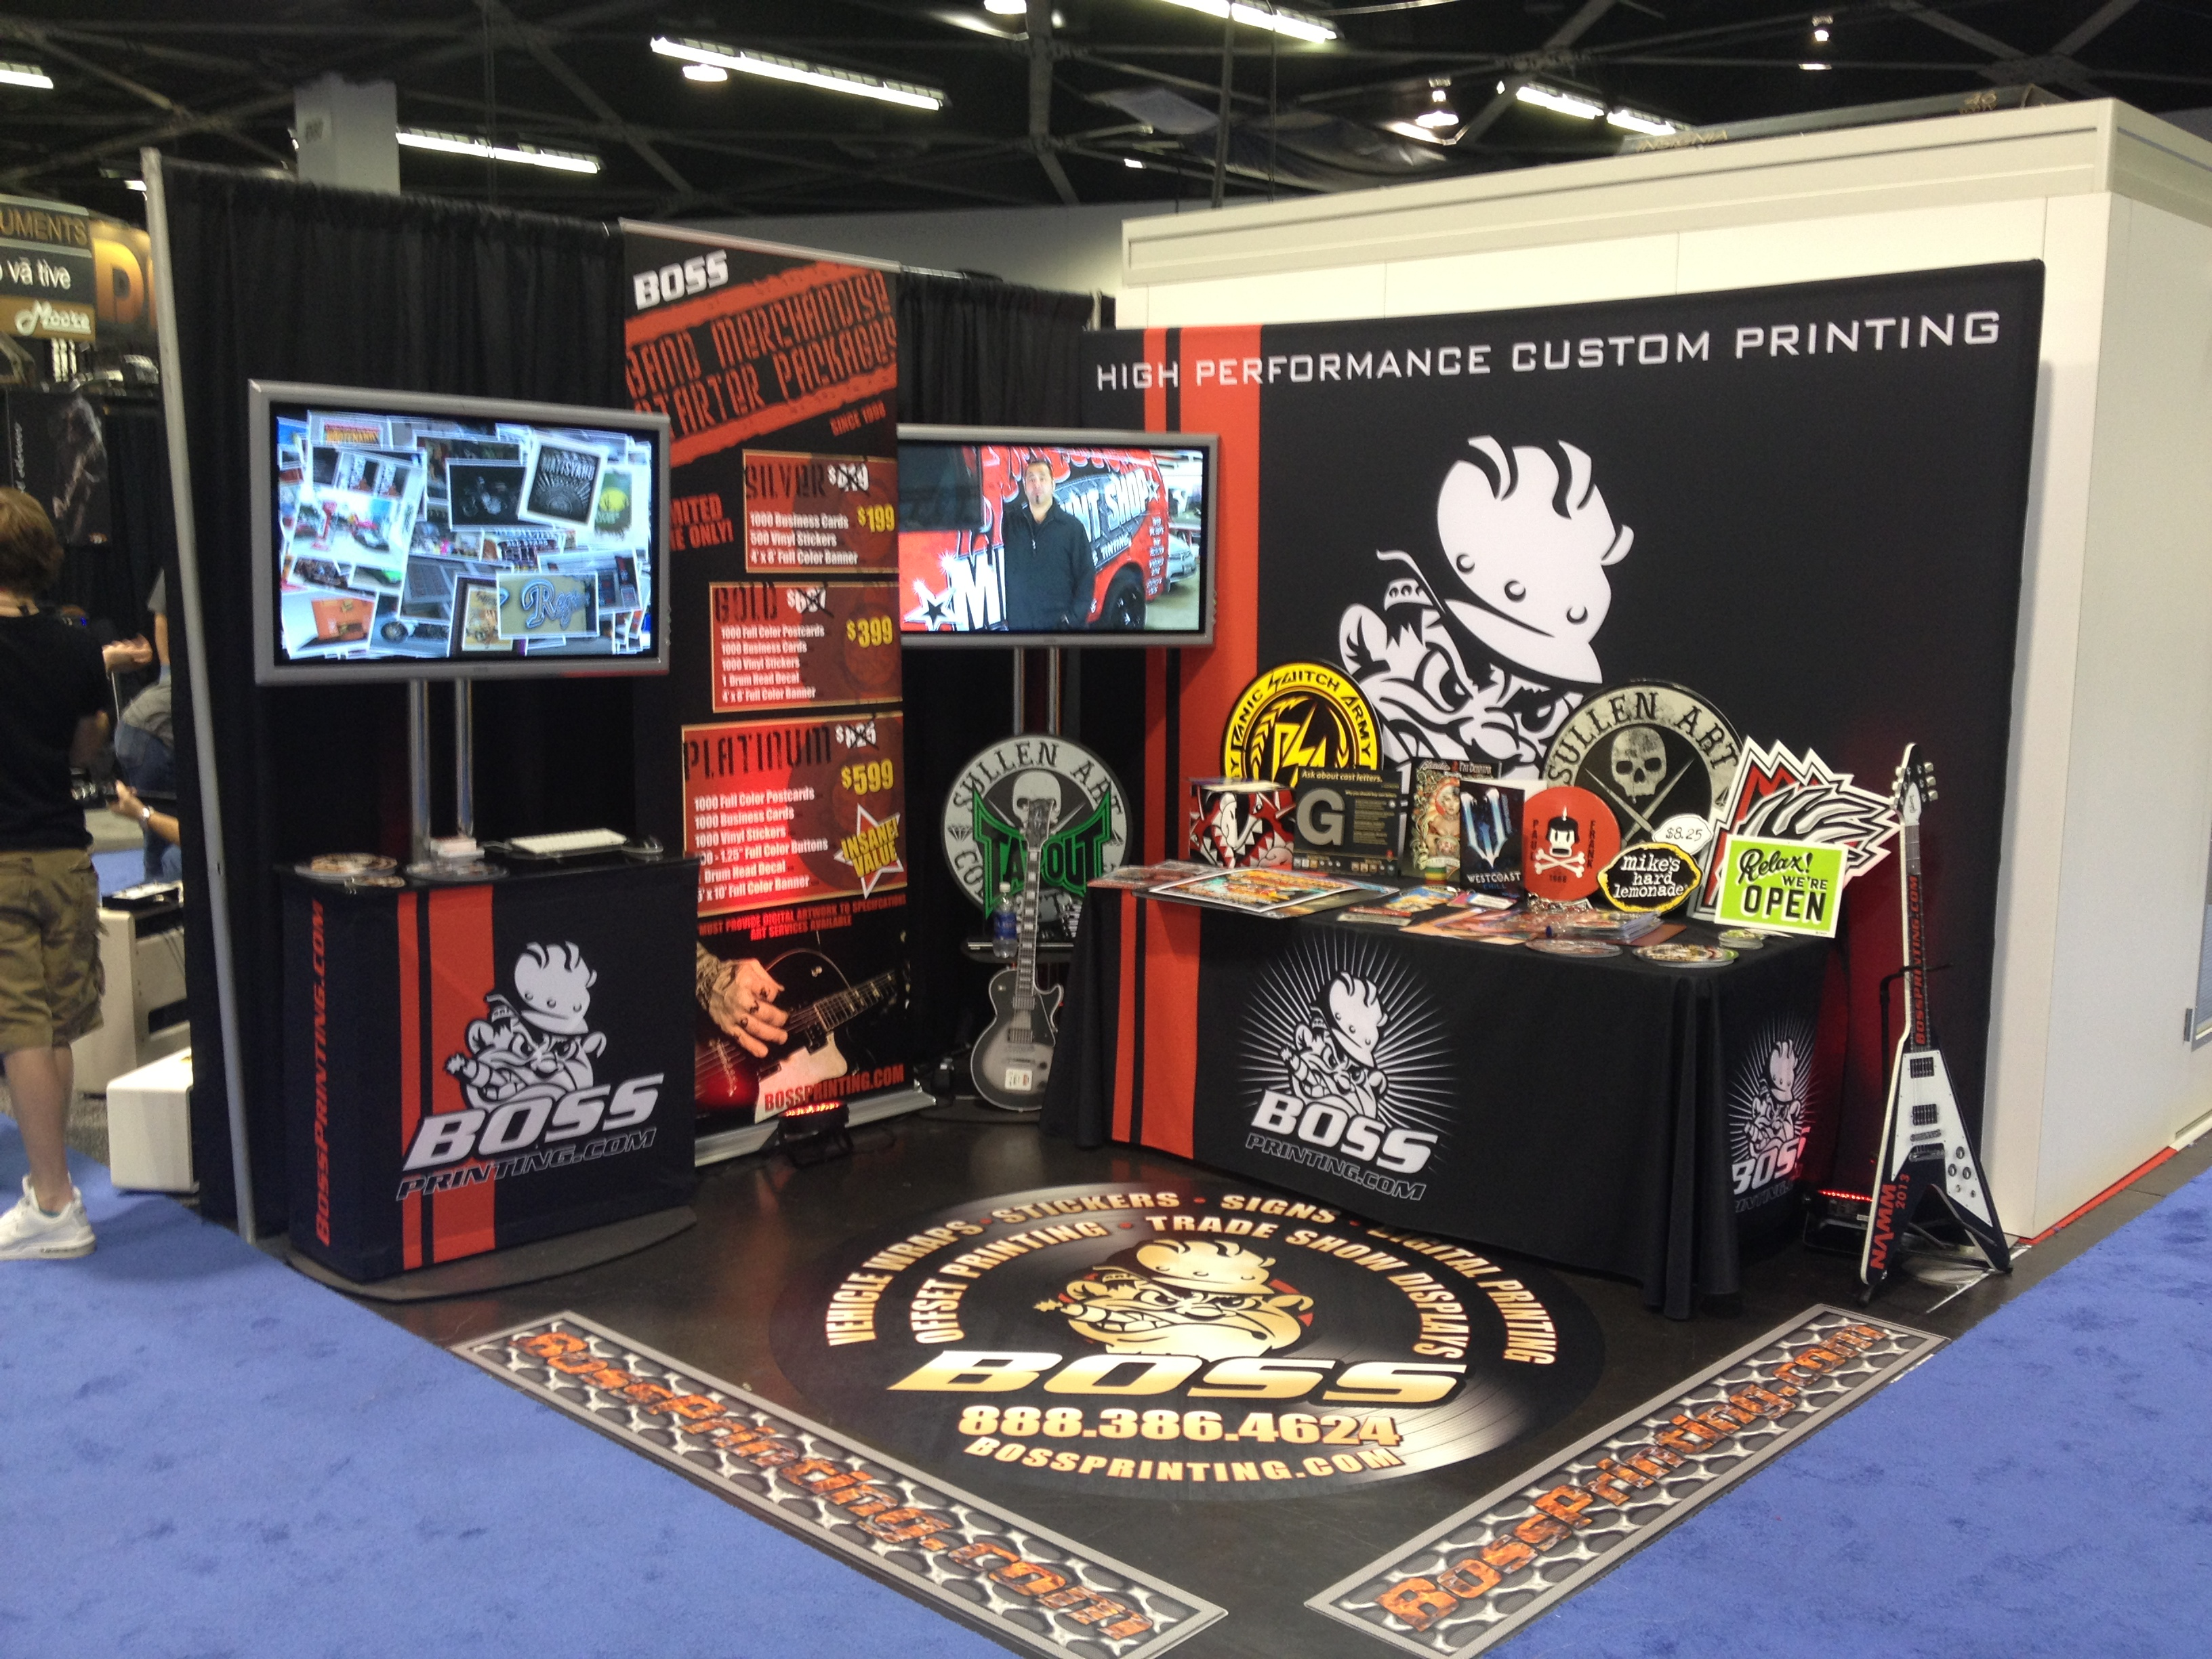 Trade Show Booth Orange County : Banners stickers car wraps trade show displays orange